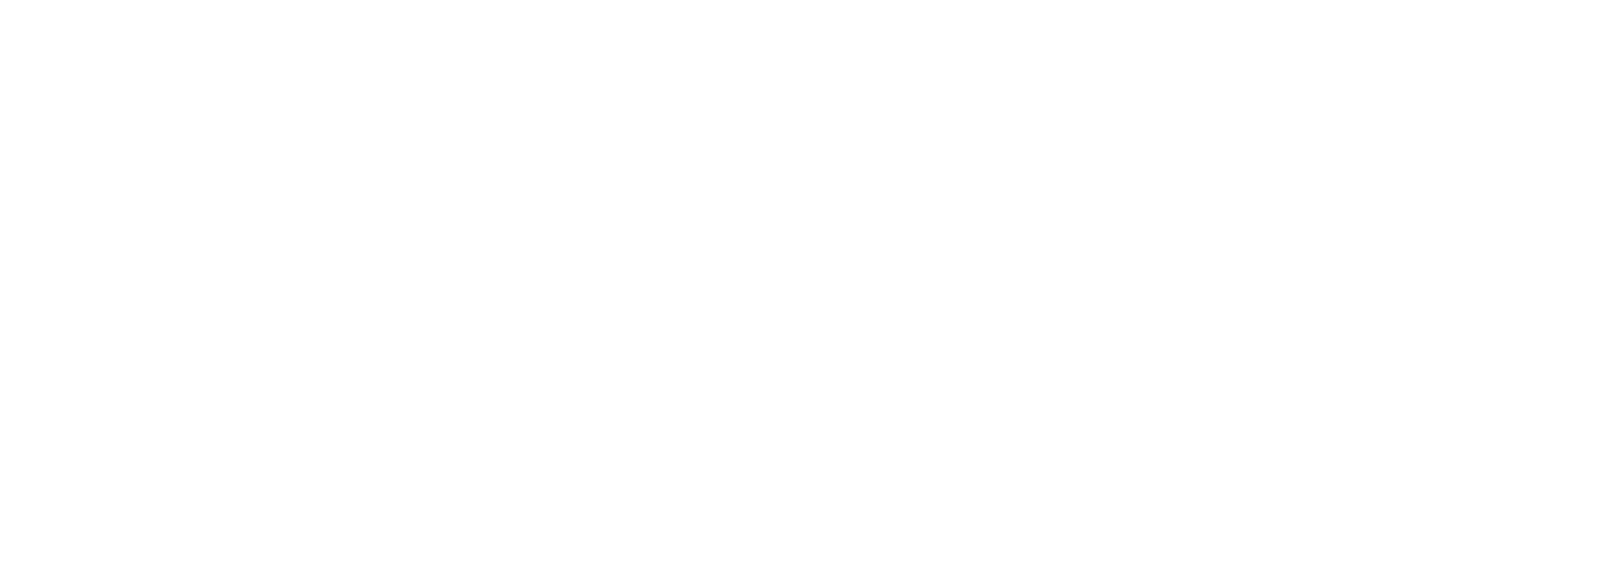 THE YELLOW MONKEY SUPER メカラ ウロコ・29 -FINAL-